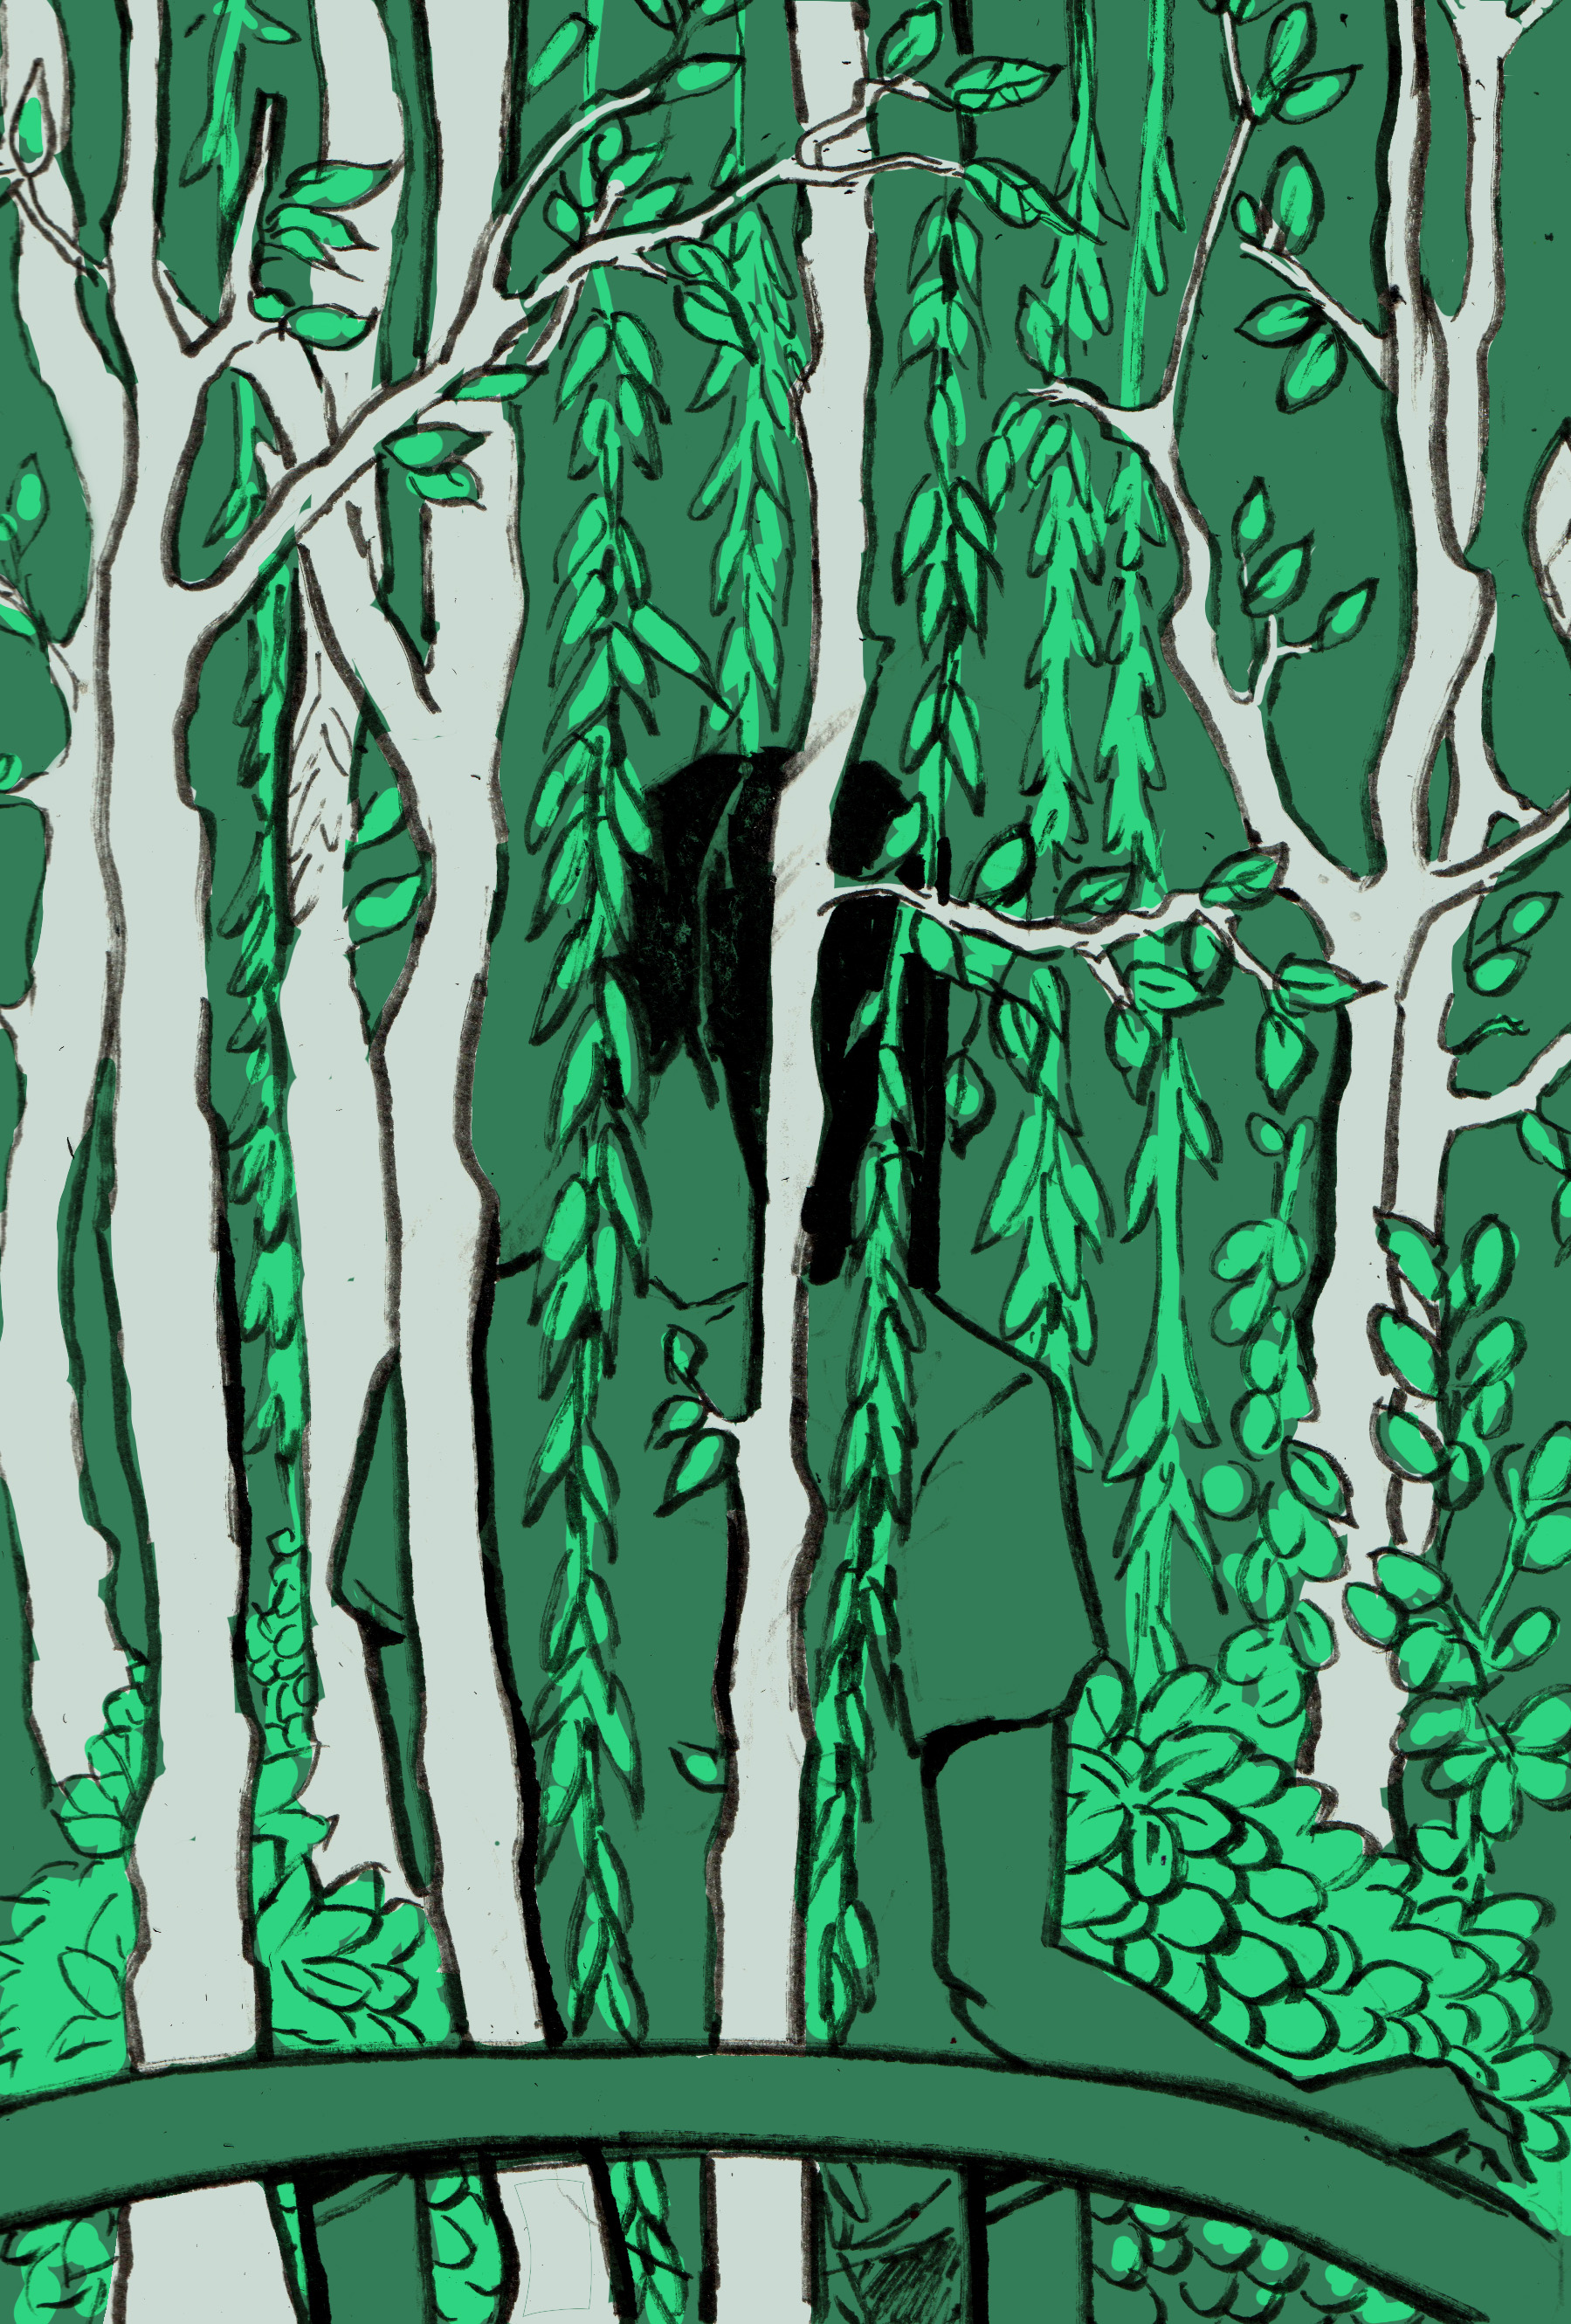 Figure standing in forest with back facing viewer with trees and branches obscuring parts of them